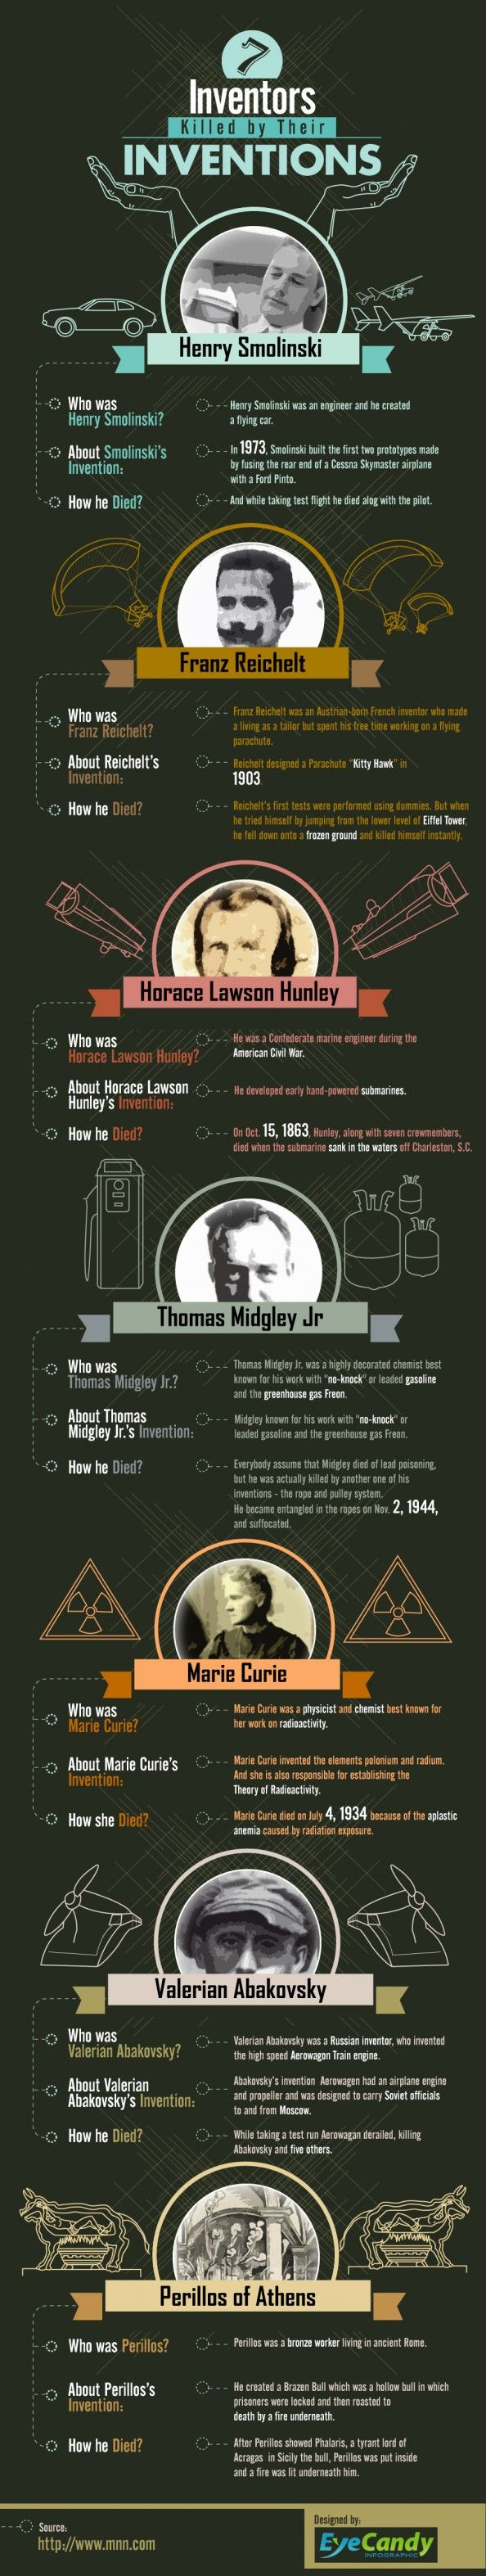 7 Inventors Killed by their Inventions